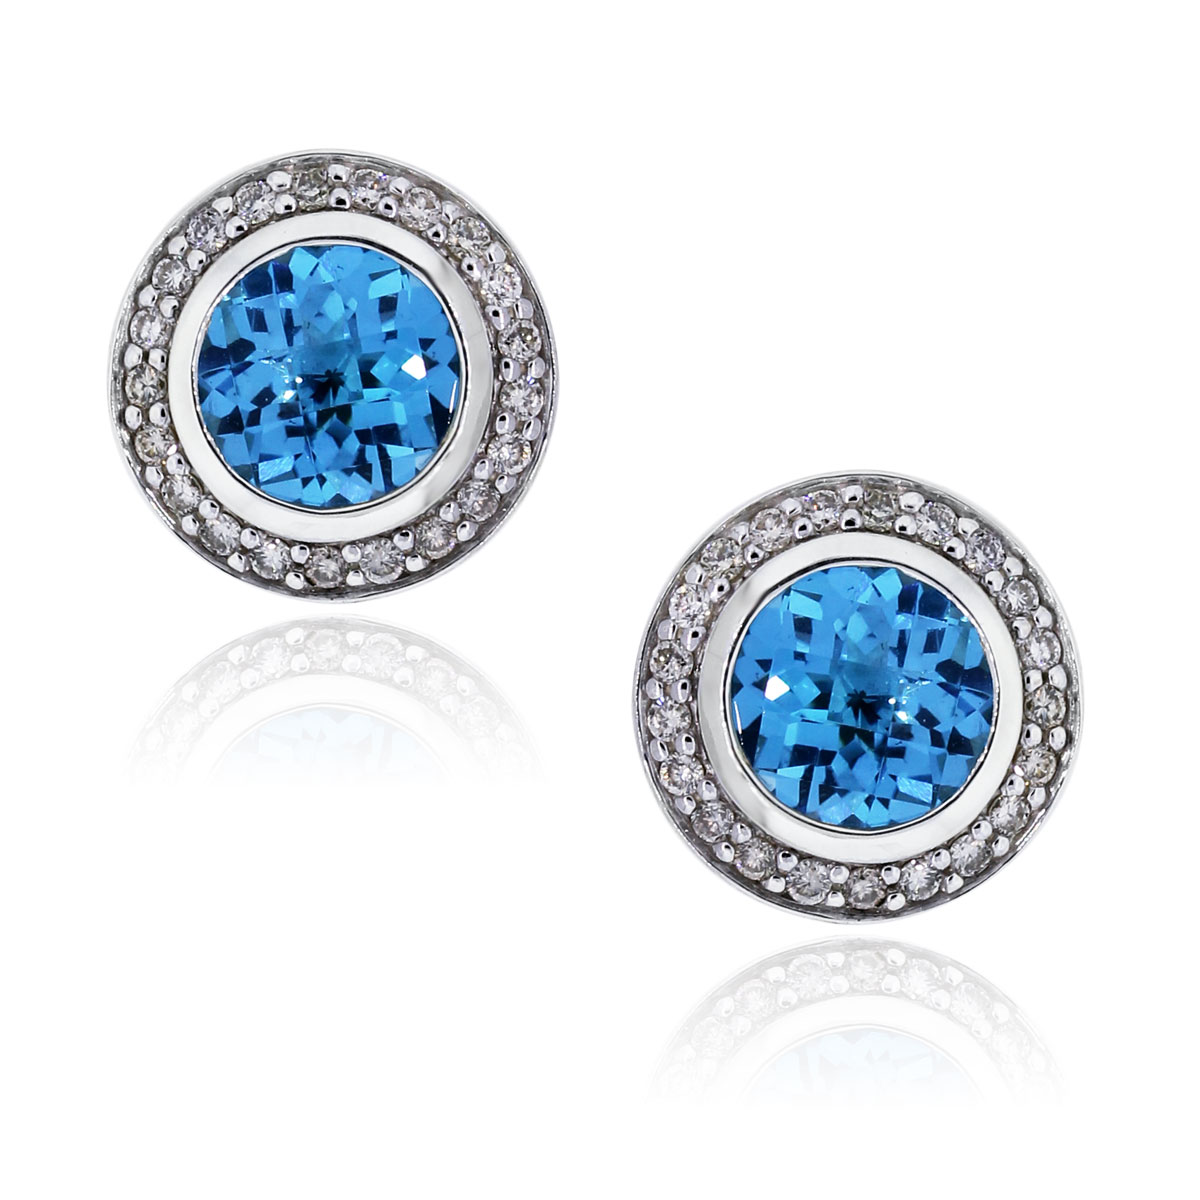 You are viewing these David Yurman Silver Blue Topaz Diamond Cerise Earrings!